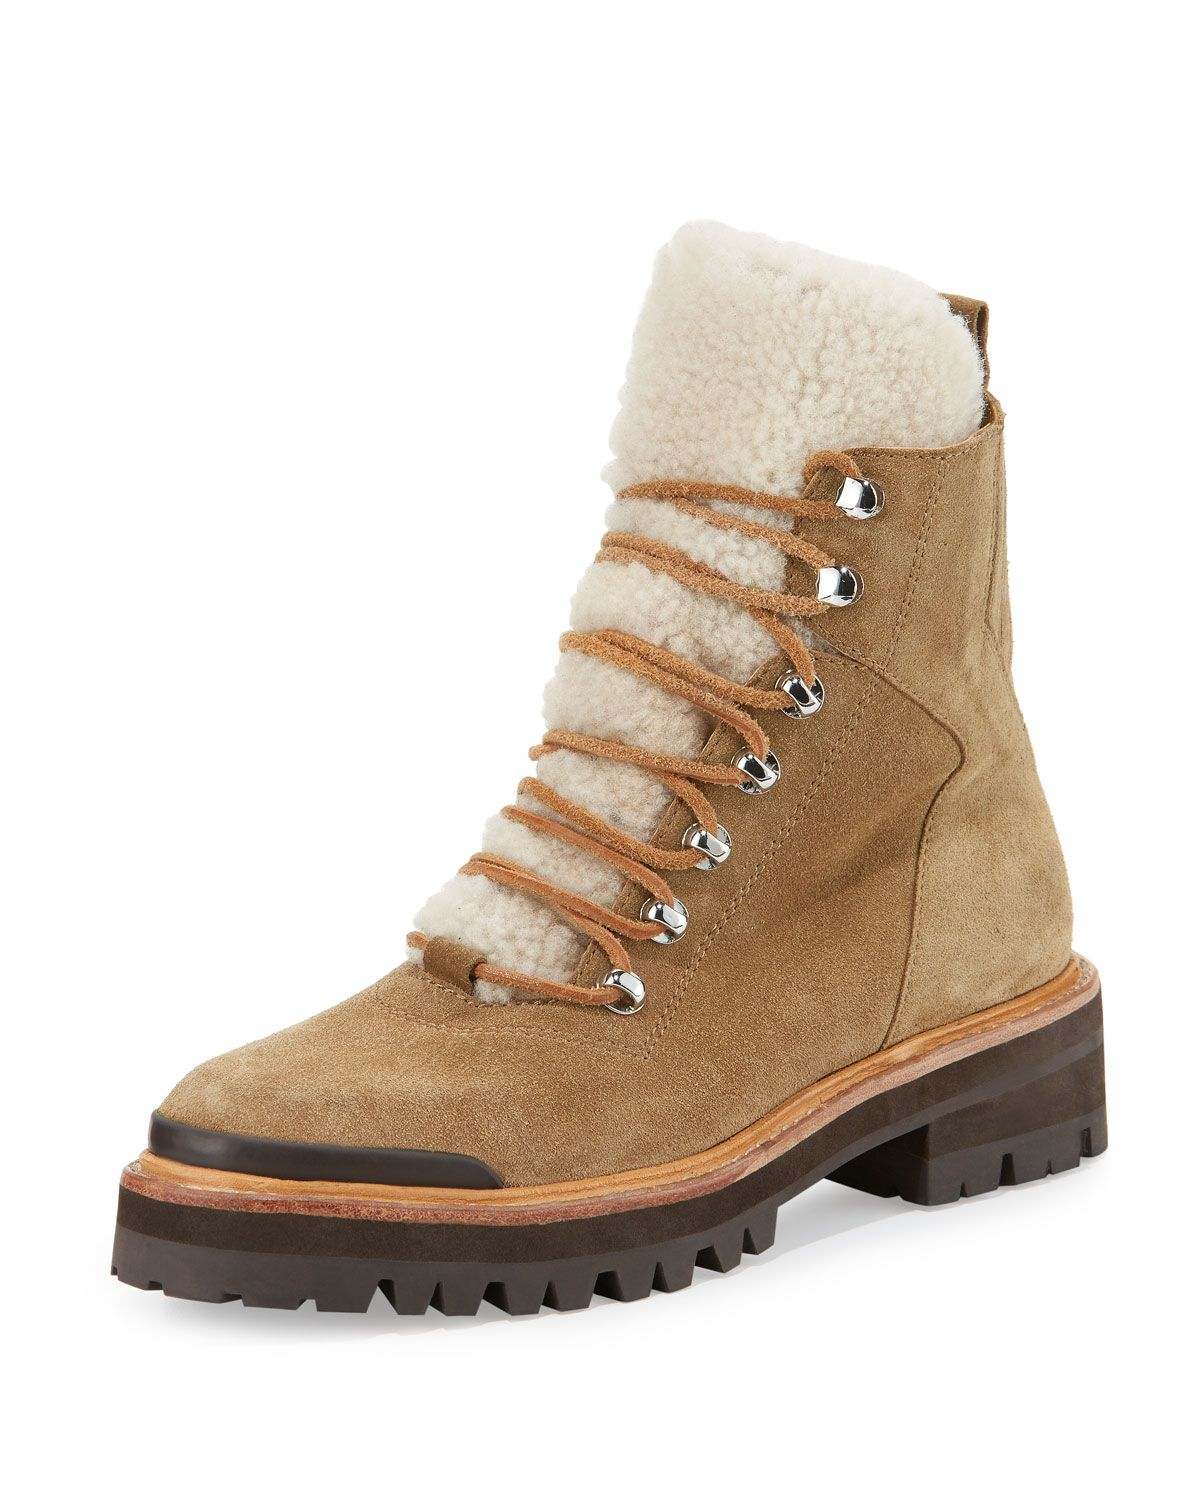 Sigerson Morrison Shearling-Lined Ankle Boots cheap sale cost f0k7b